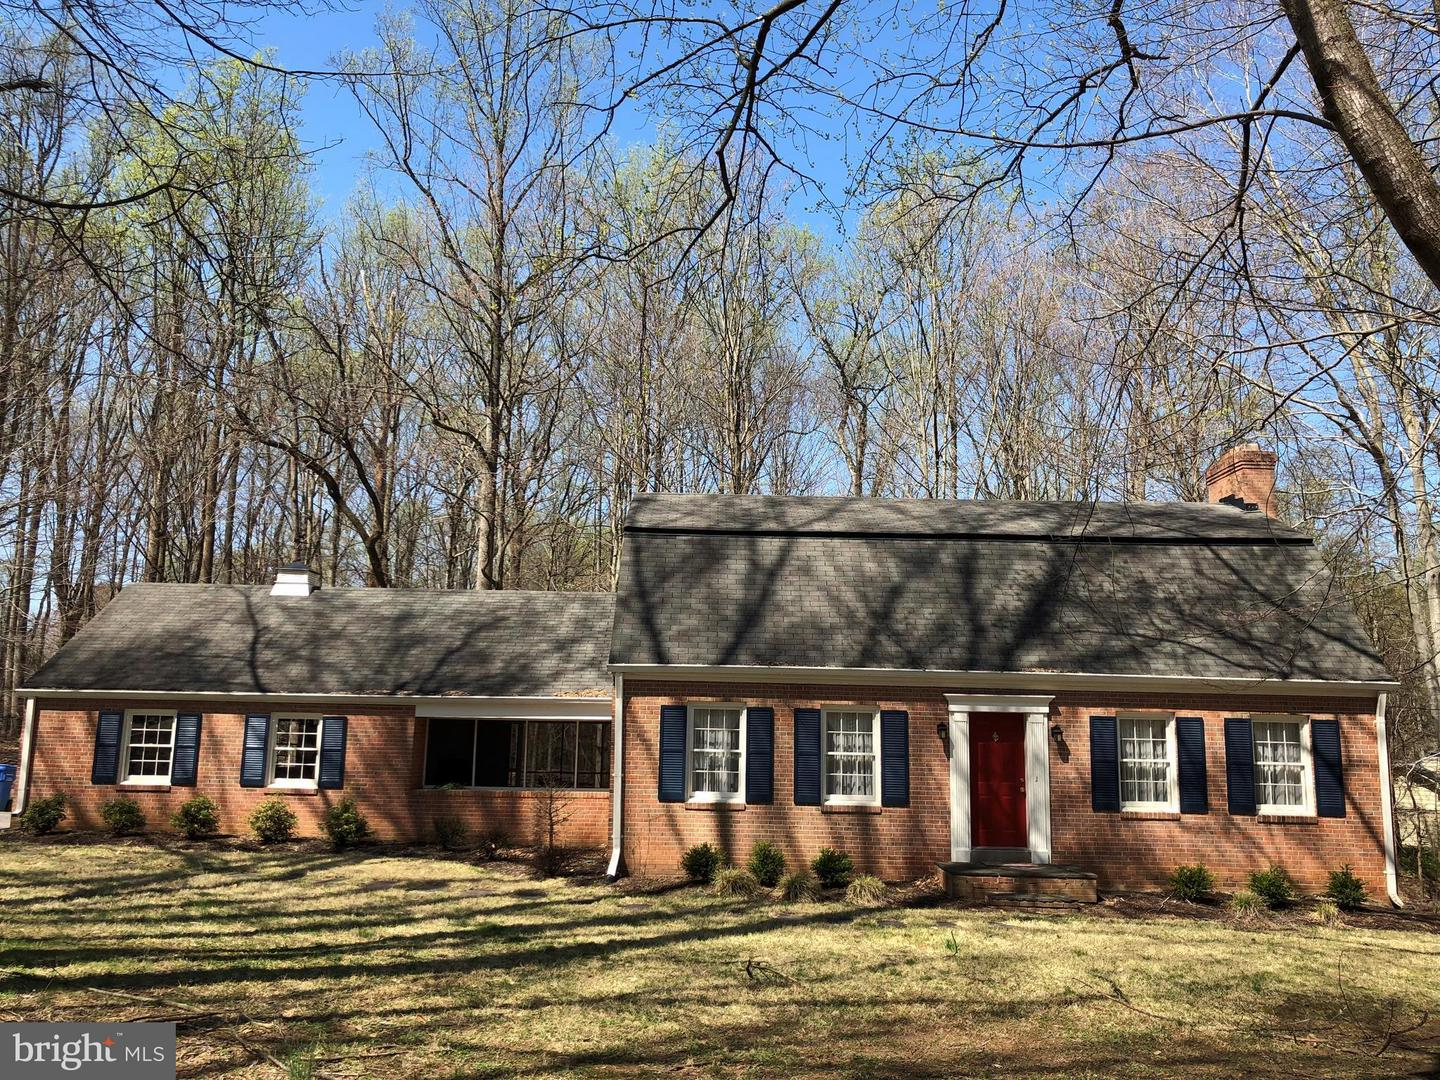 8512 HORSESHOE LANE, POTOMAC, Maryland